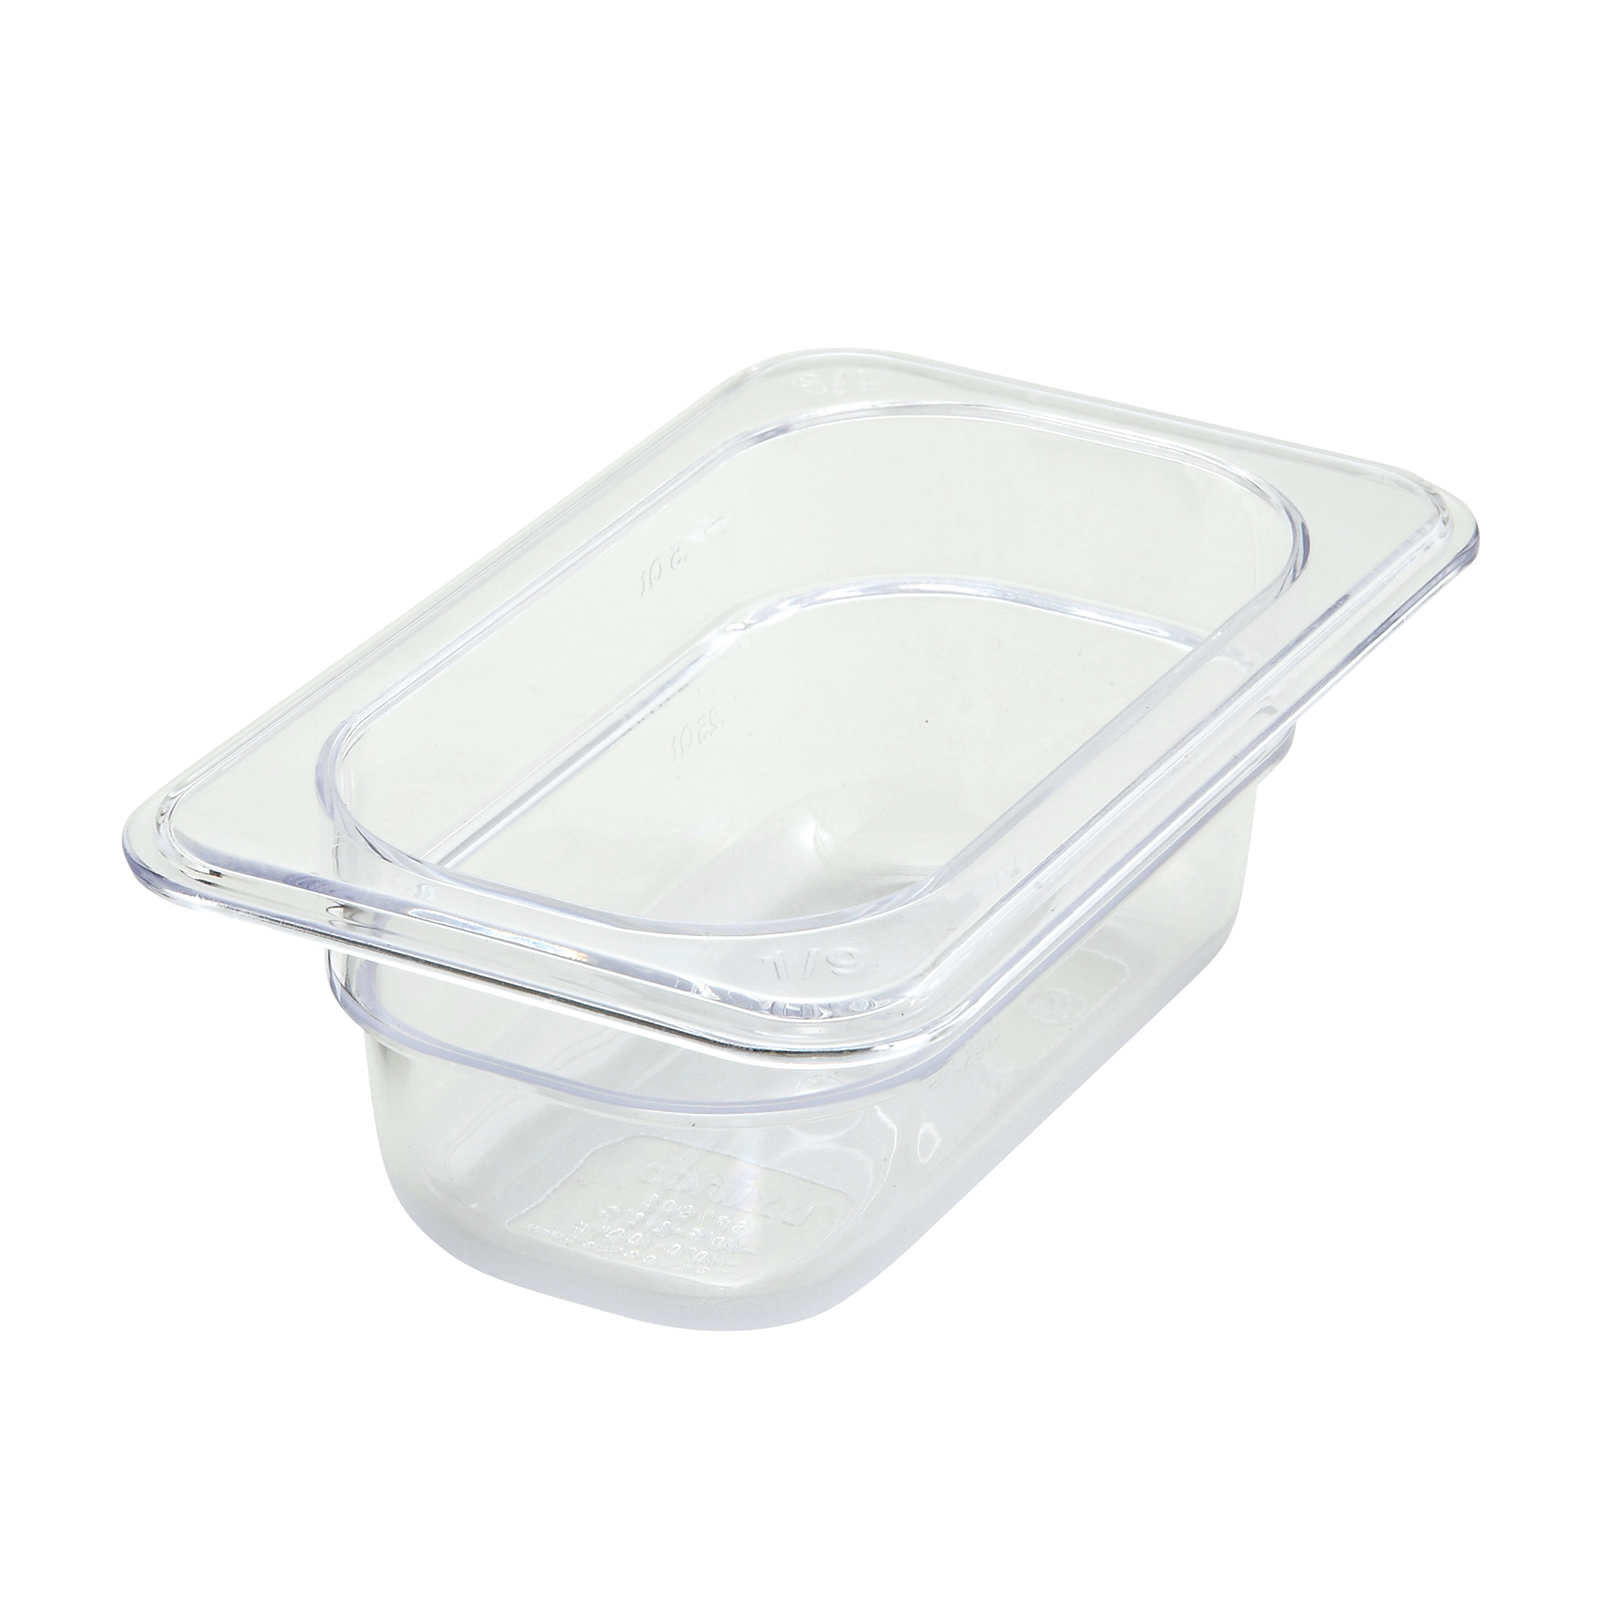 Winco SP7902 food pan, plastic